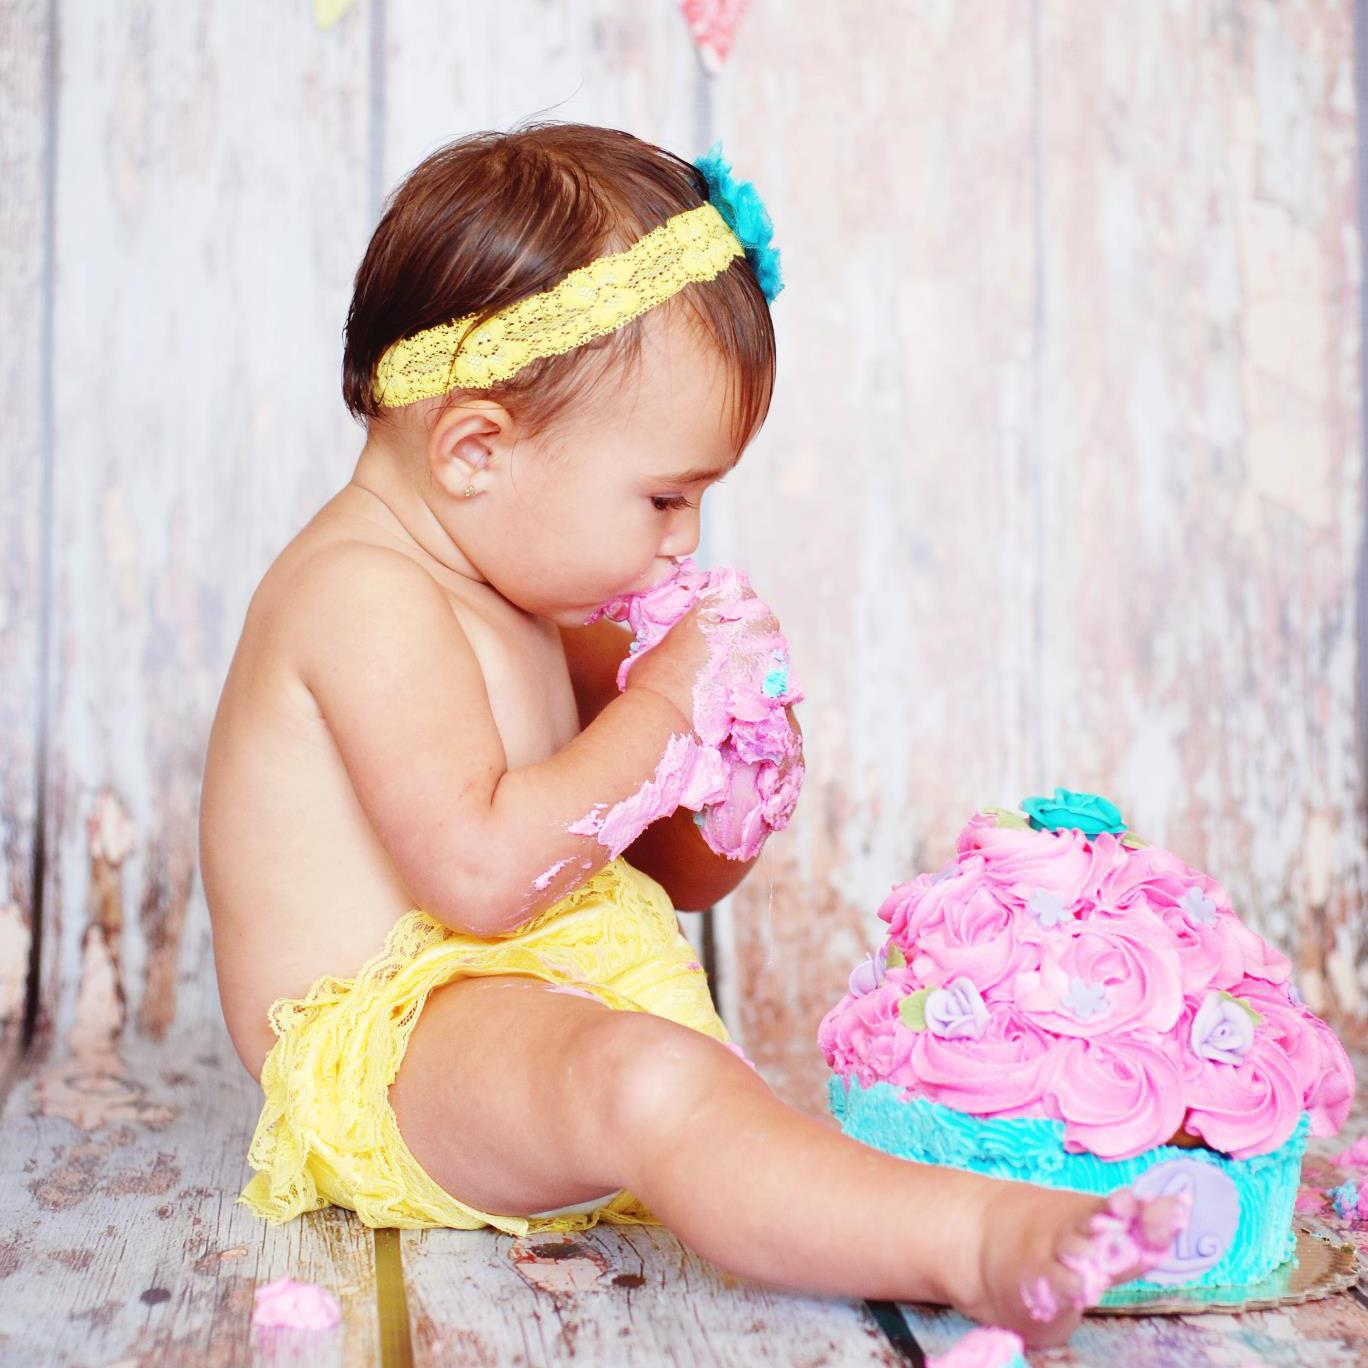 This adorable baby girl is smashing one of our giant cupcakes. The